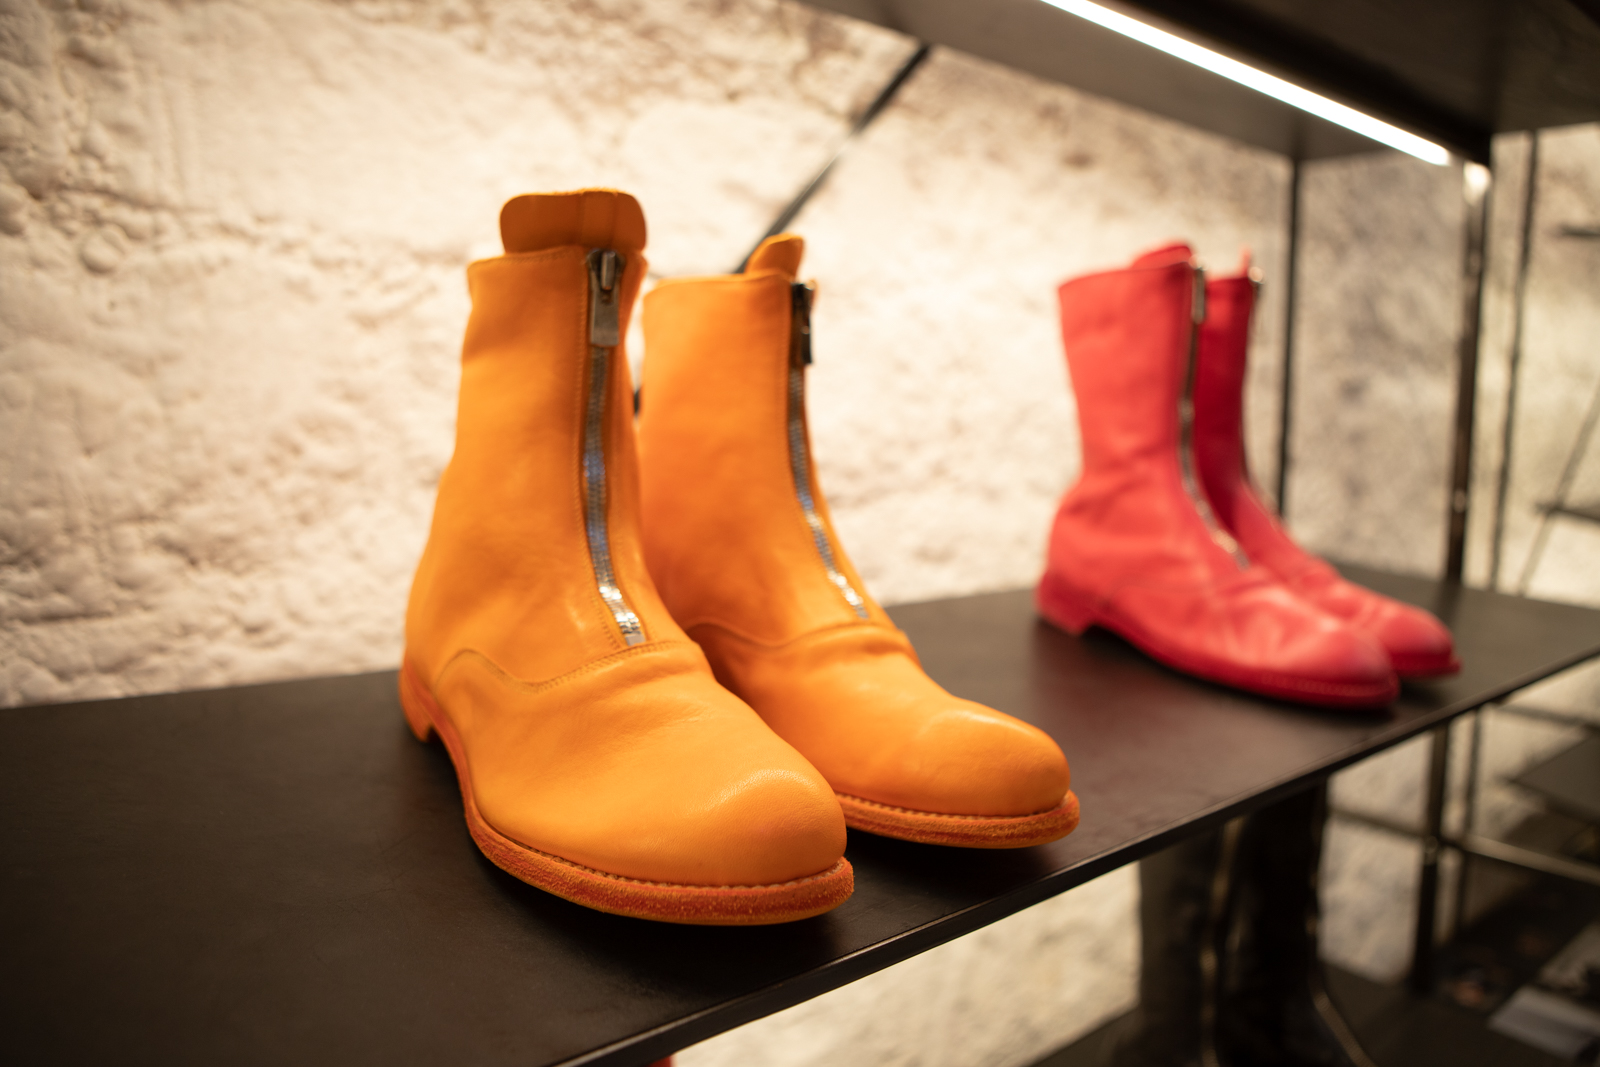 Guidi Front Zip Boots in Orange Leather 310 Military Boots in Pink Leather FW20